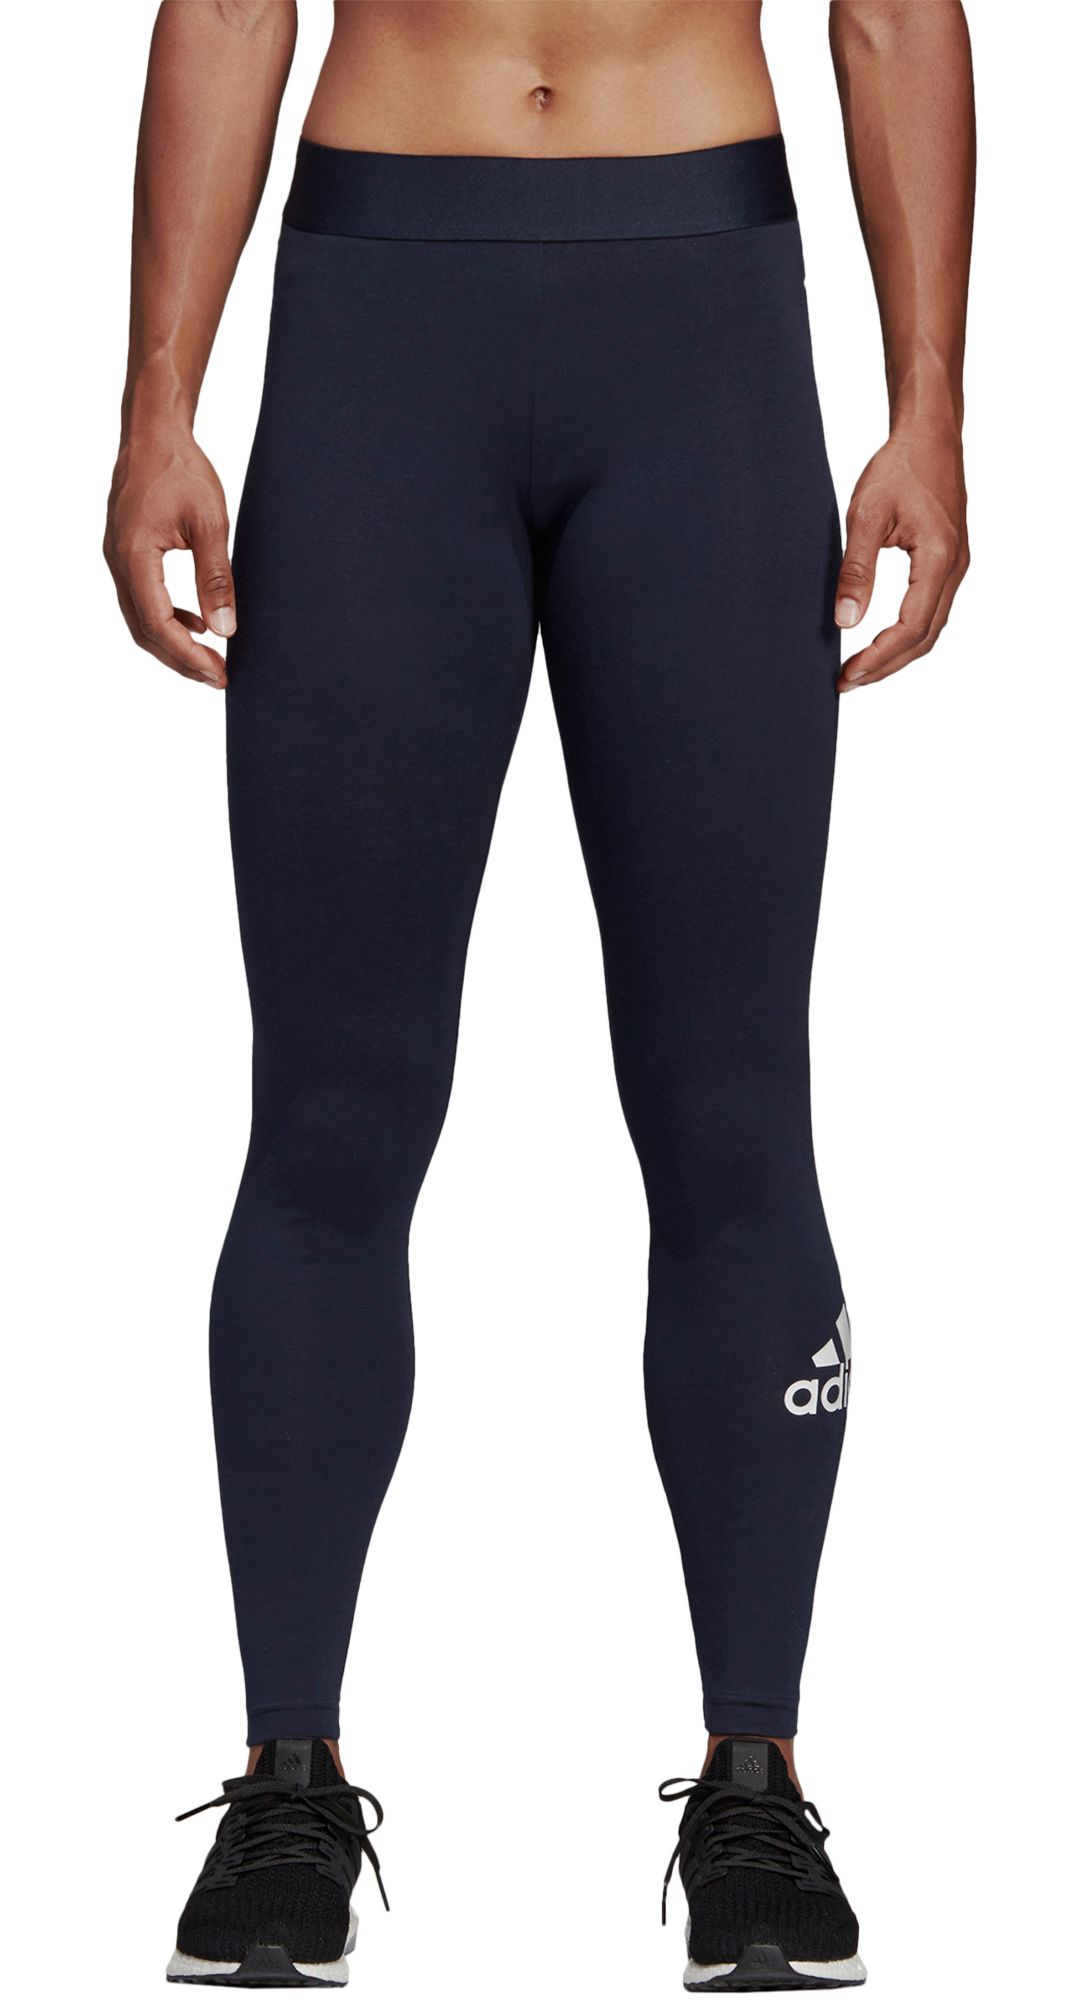 cbc8d4a4880740 adidas Women's Must Haves Badge Of Sport Tights. noImageFound. Previous